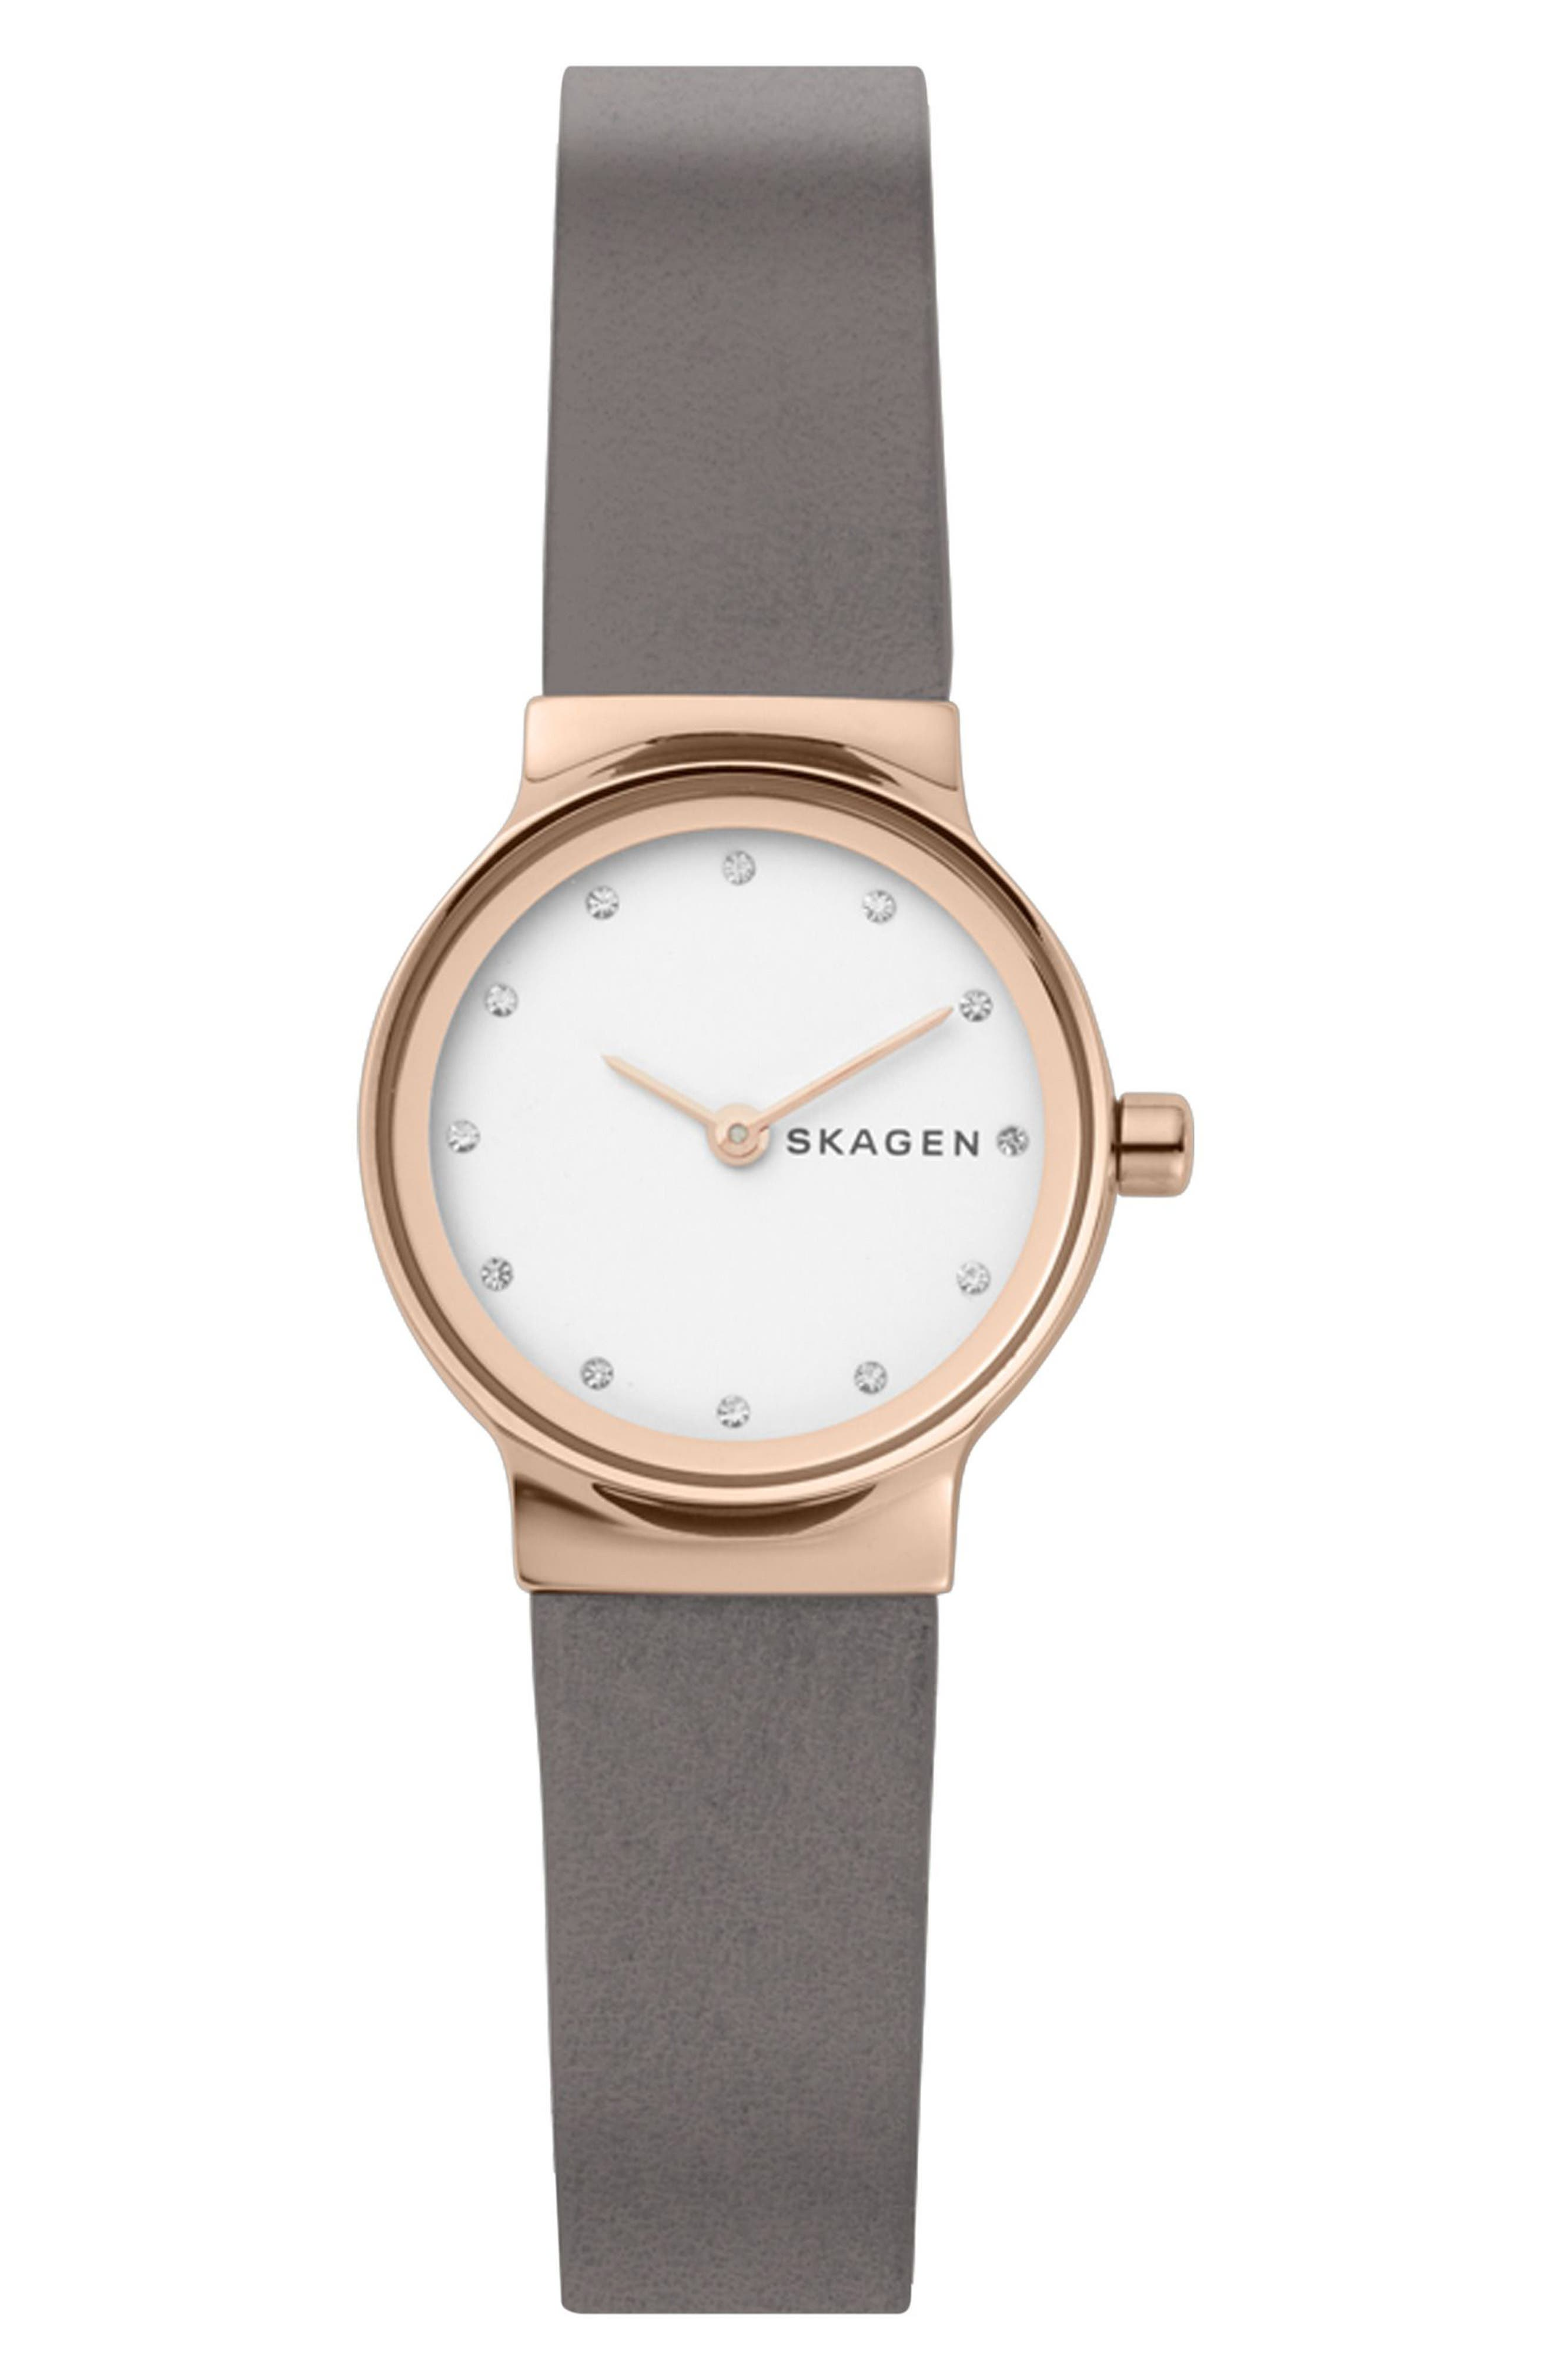 SKAGEN, Freja Crystal Accent Leather Strap Watch, 26mm, Main thumbnail 1, color, GREY/ WHITE/ ROSE GOLD